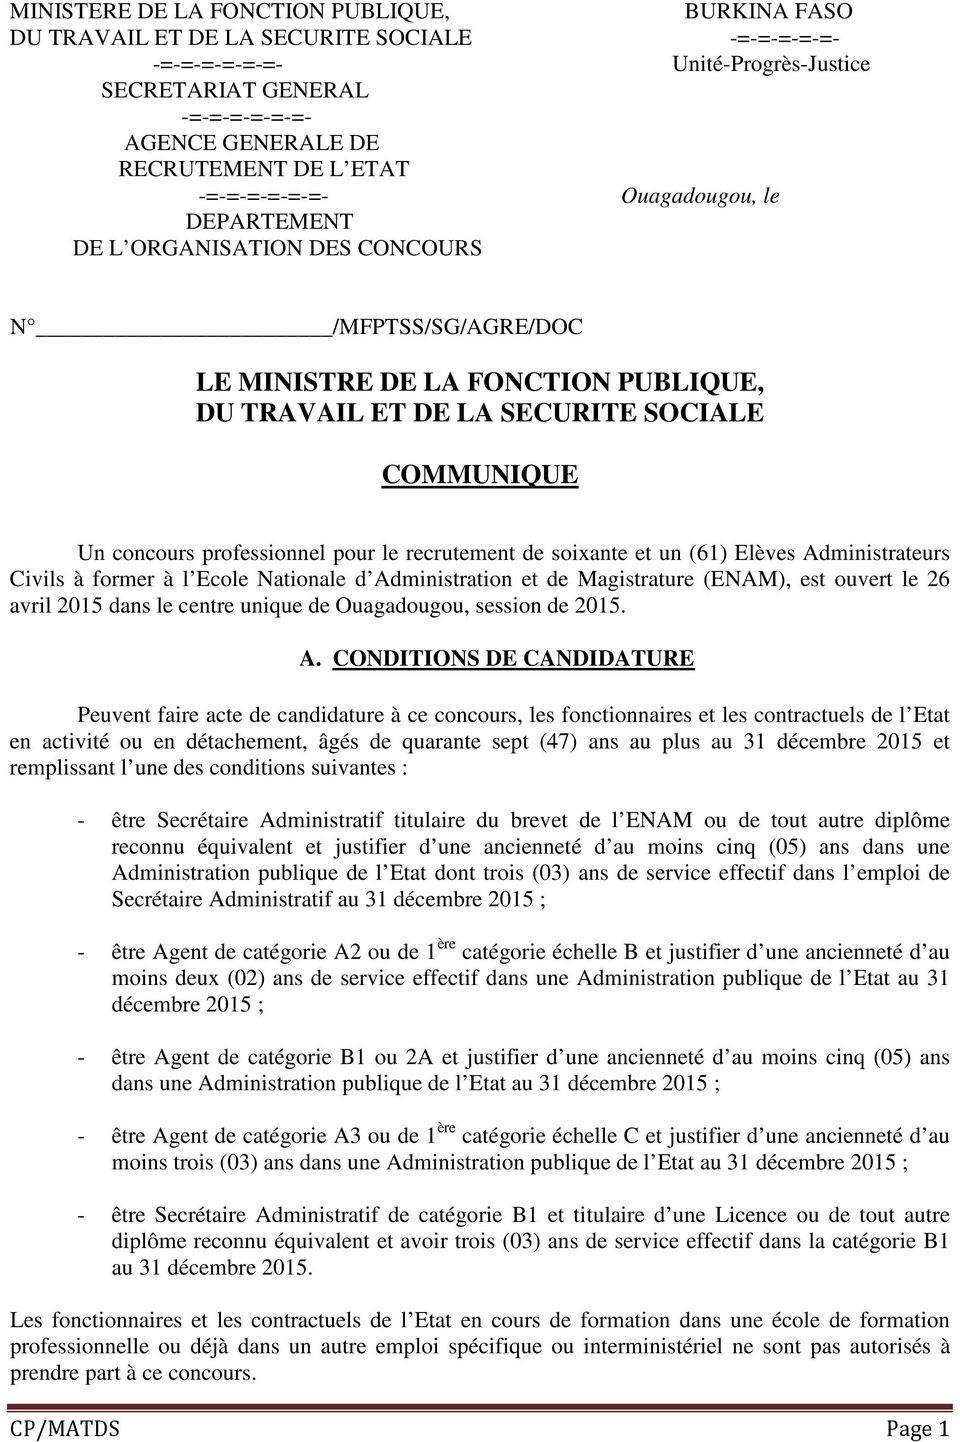 concours professionnel pour le recrutement de soixante et un (61) Elèves Administrateurs Civils à former à l Ecole Nationale d Administration et de Magistrature (ENAM), est ouvert le 26 avril 2015